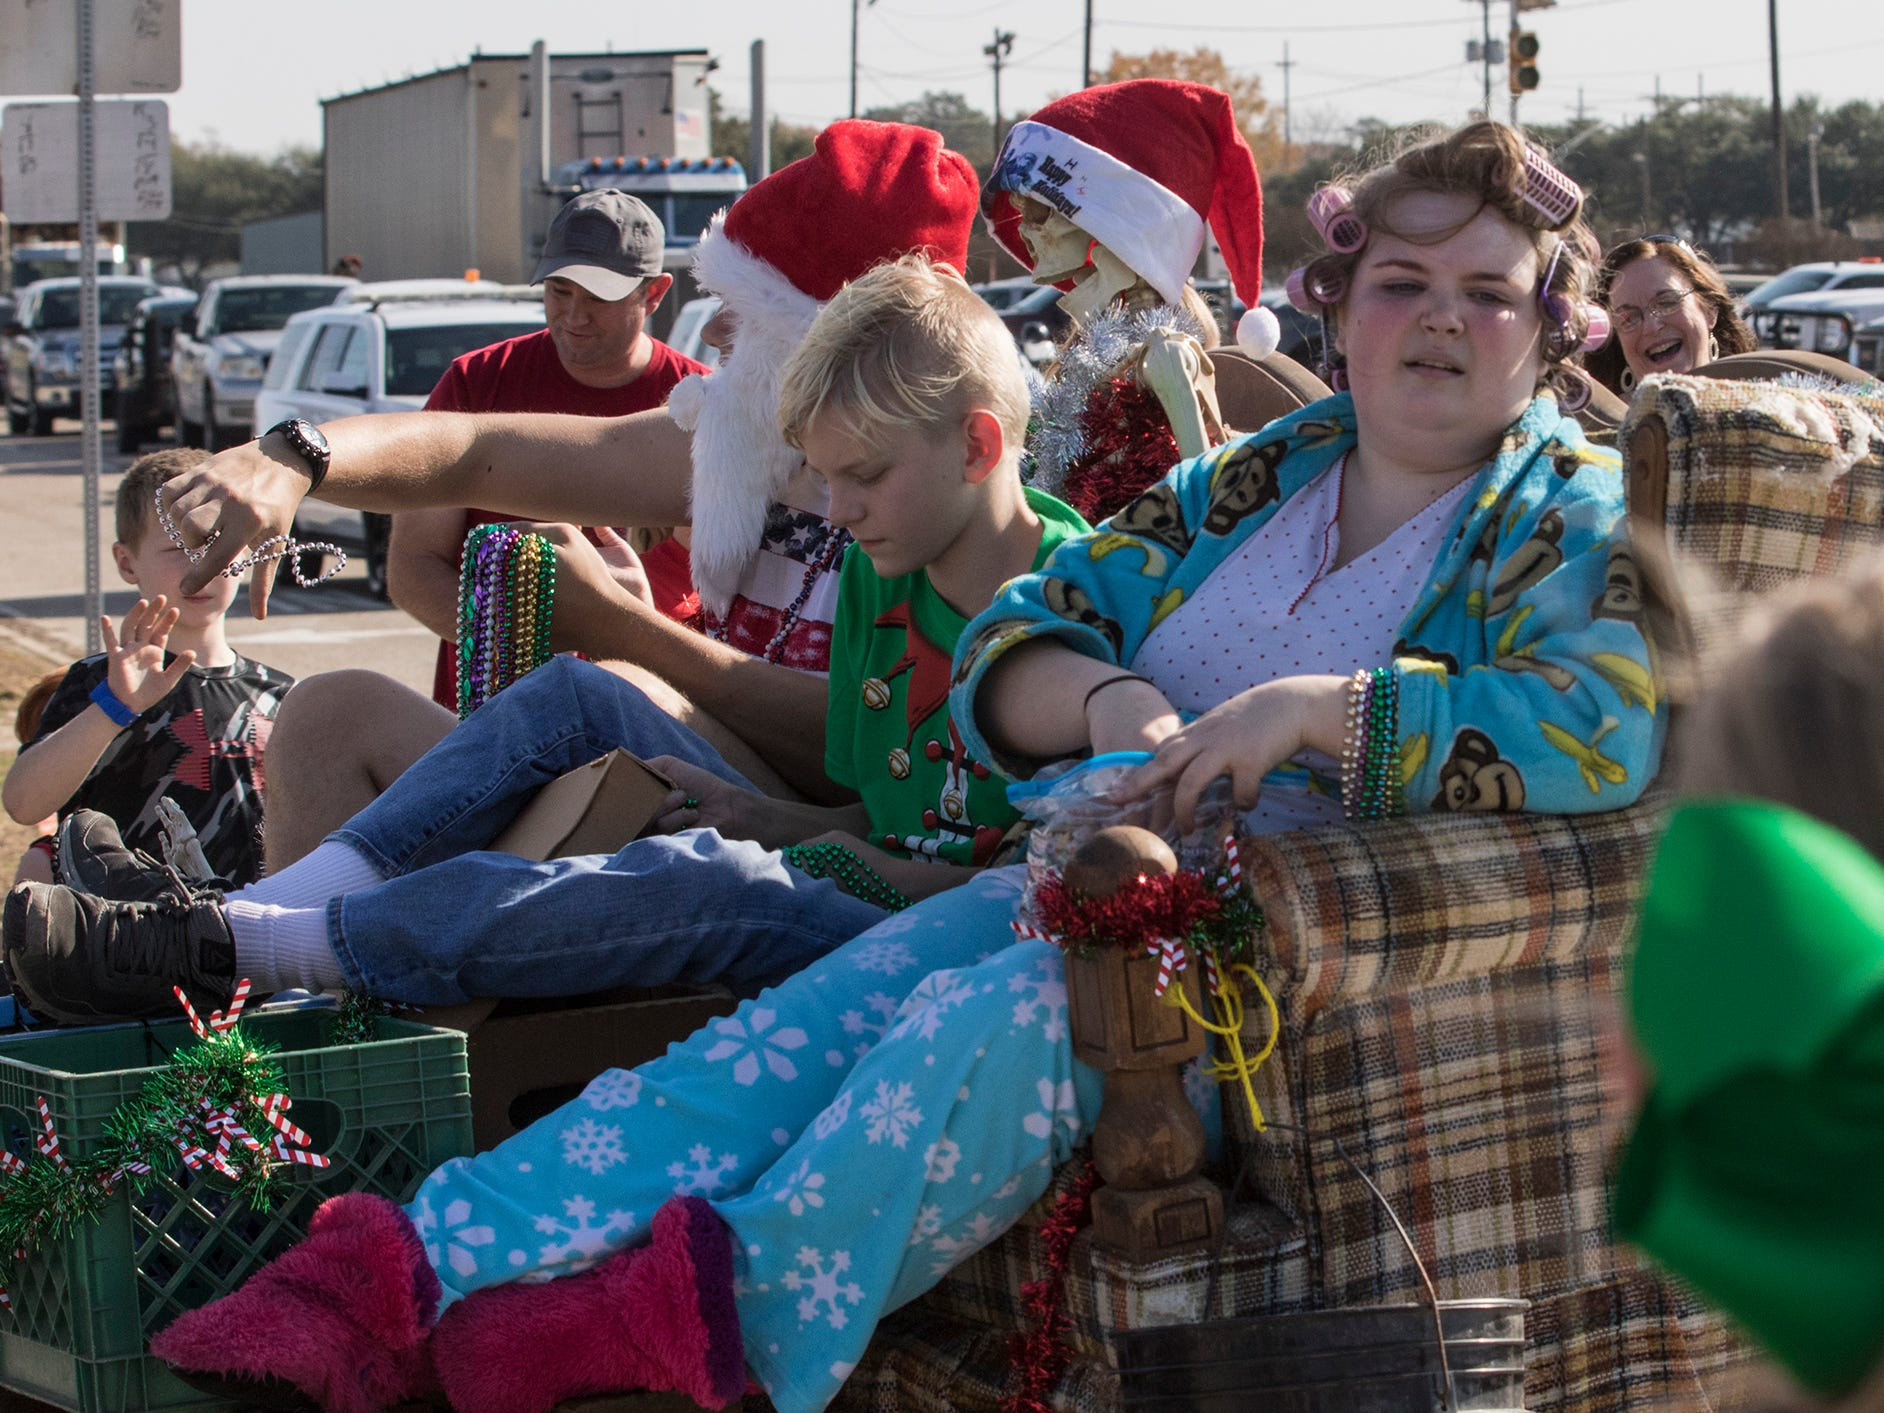 The 12th Annual Bawcomville Redneck Christmas Parade went through Bawcomville, La. on Dec. 1.